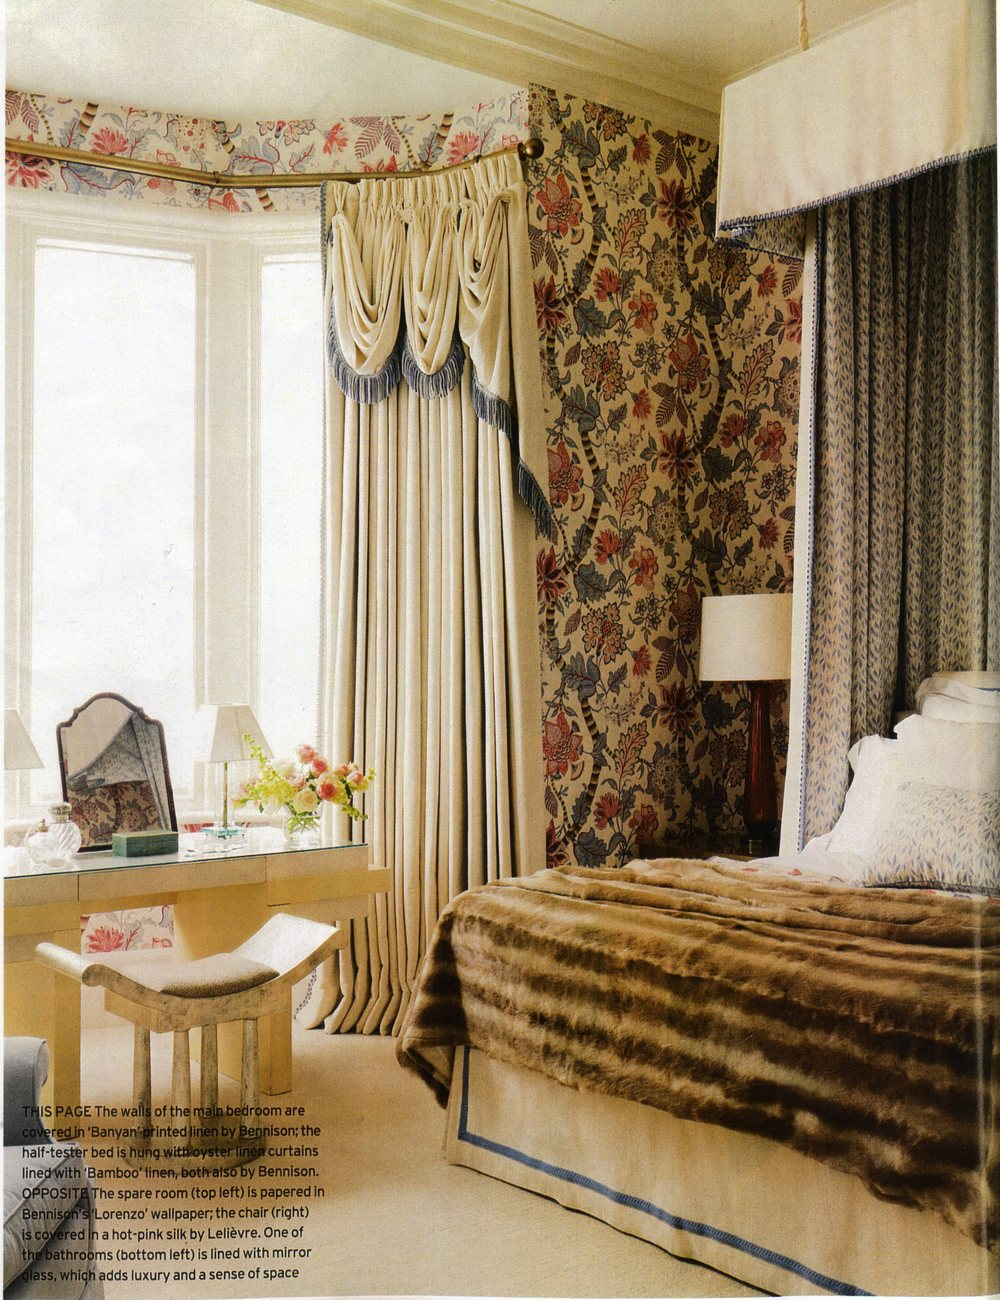 Banyan Blue Pink (walls) - Little Bamboo (interior bed drapes)